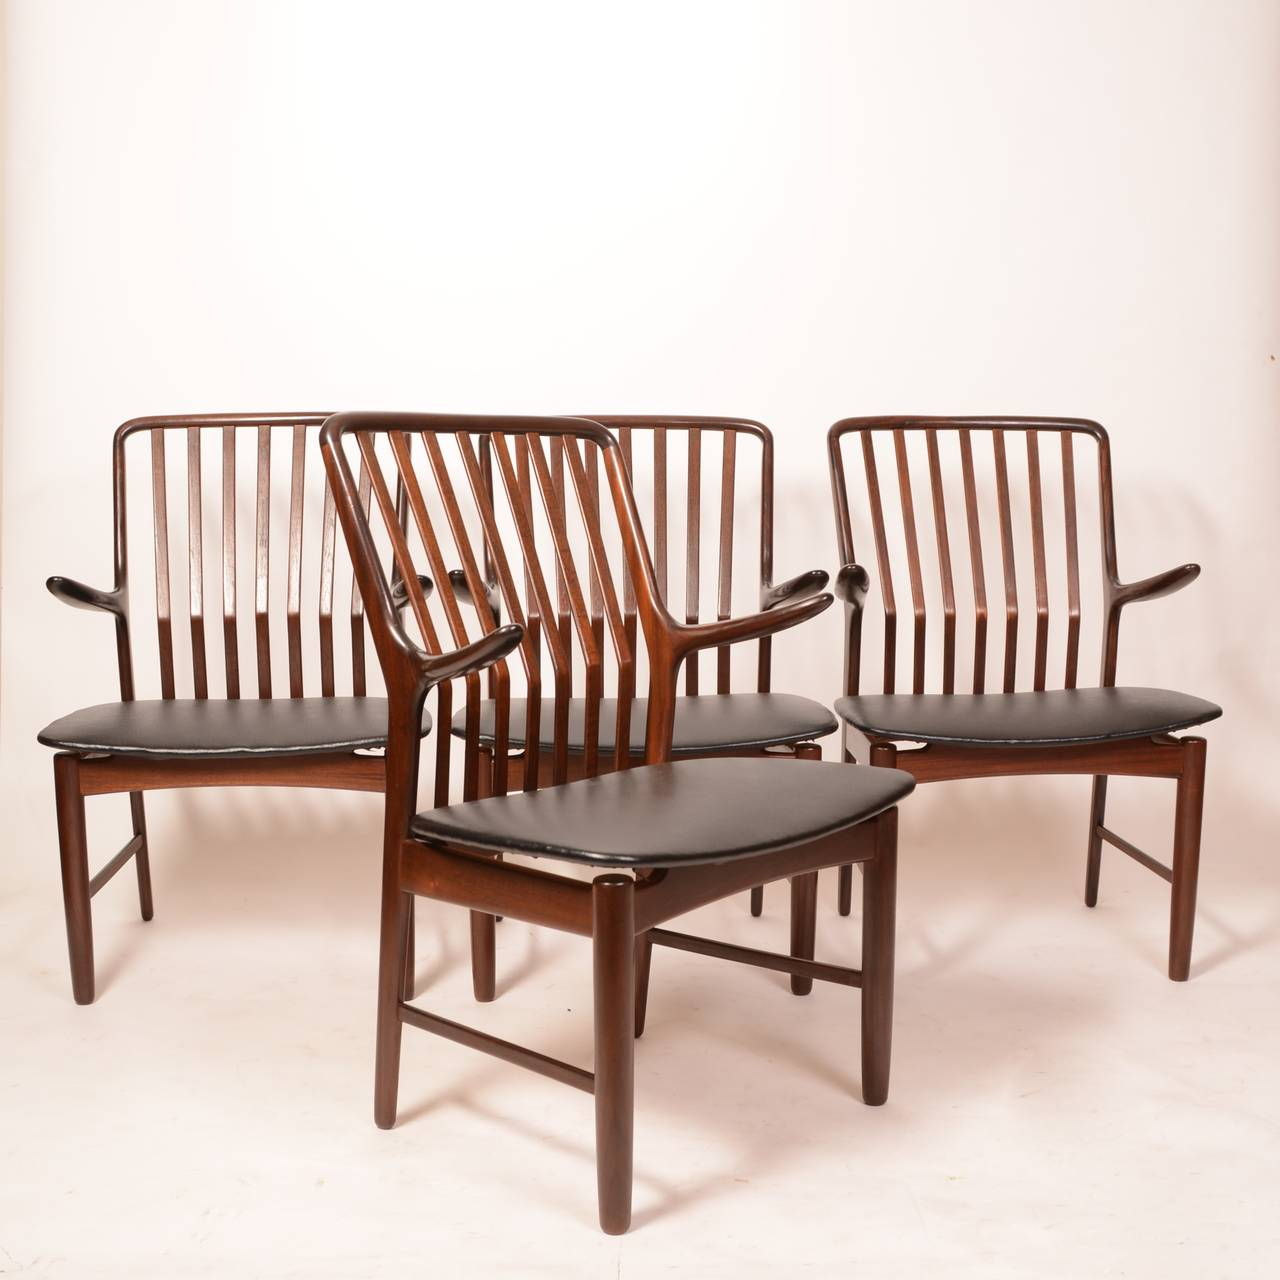 Danish Arm Chairs by Svend A. Madsen for Moreddi, Set of 2 10